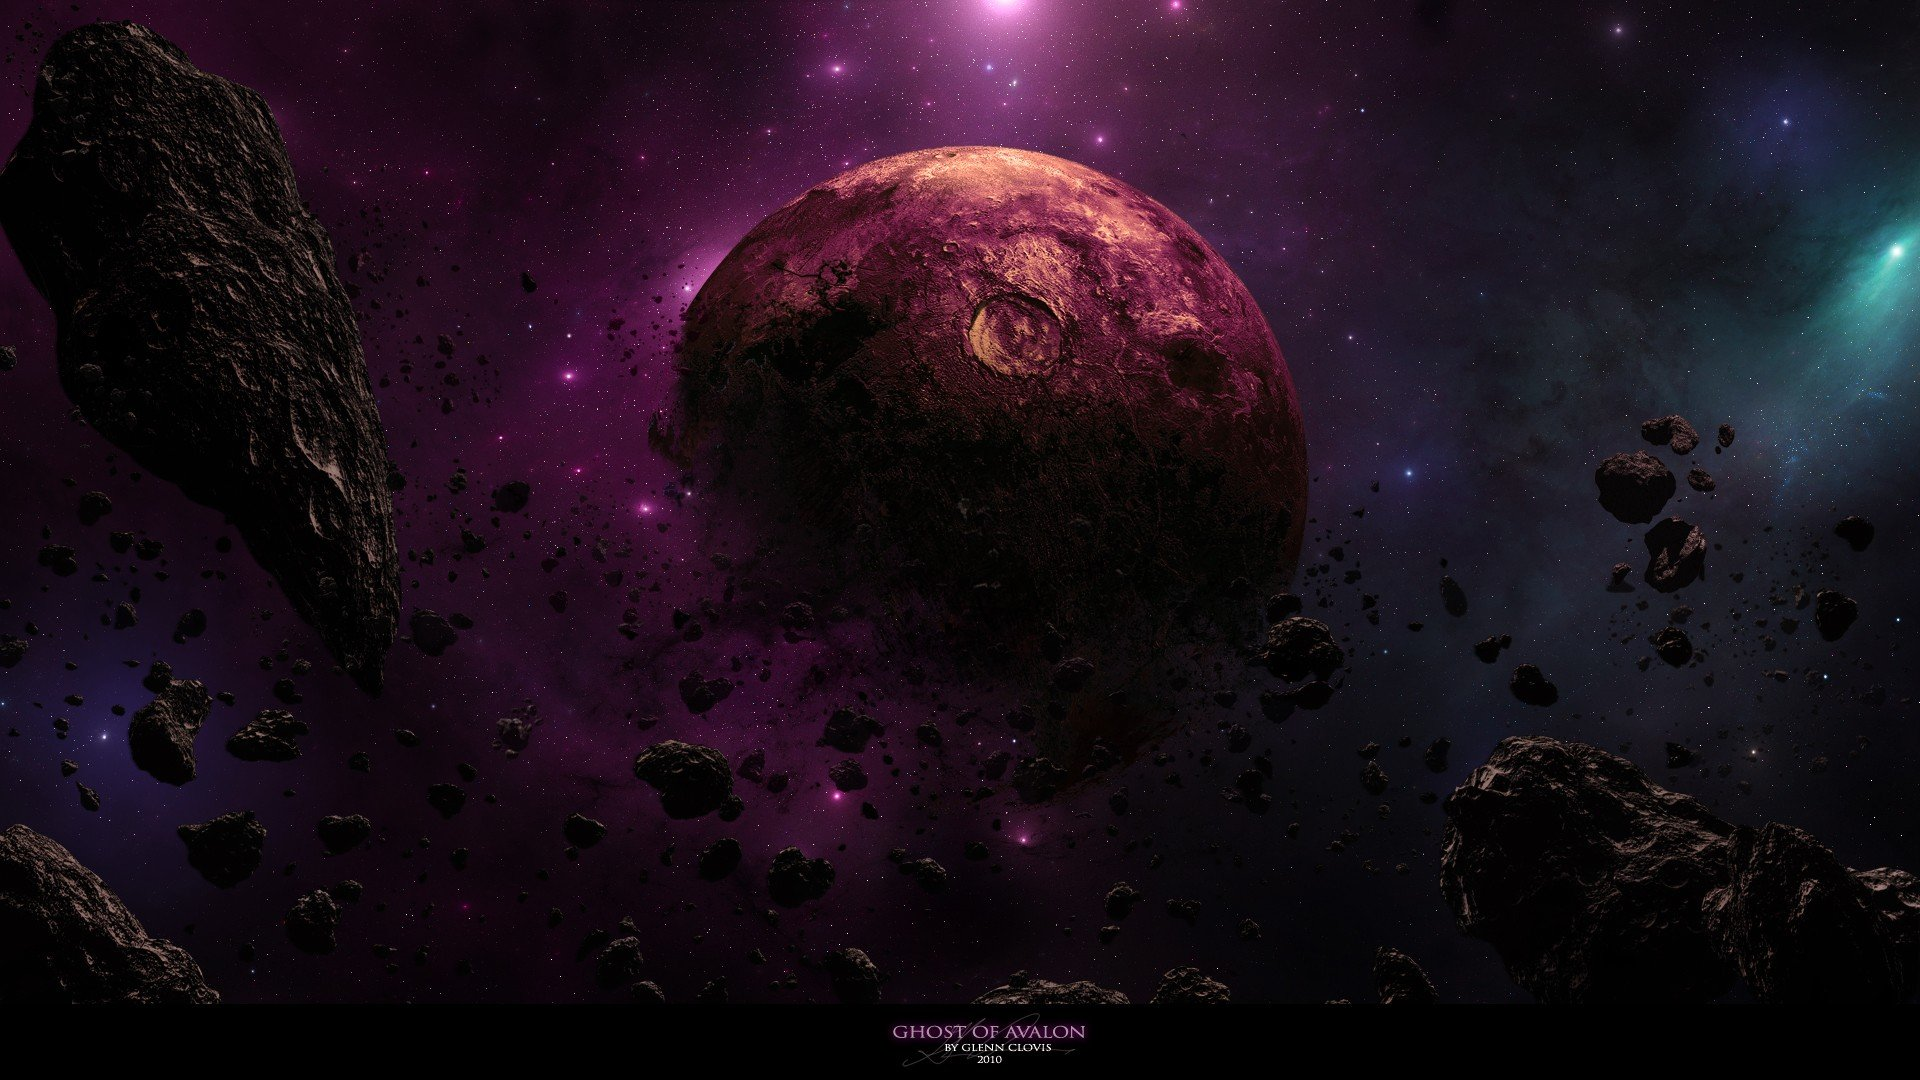 Space Wallpaper Deviantart outer space galaxies planets rocks nebulae DeviantART dust asteroids